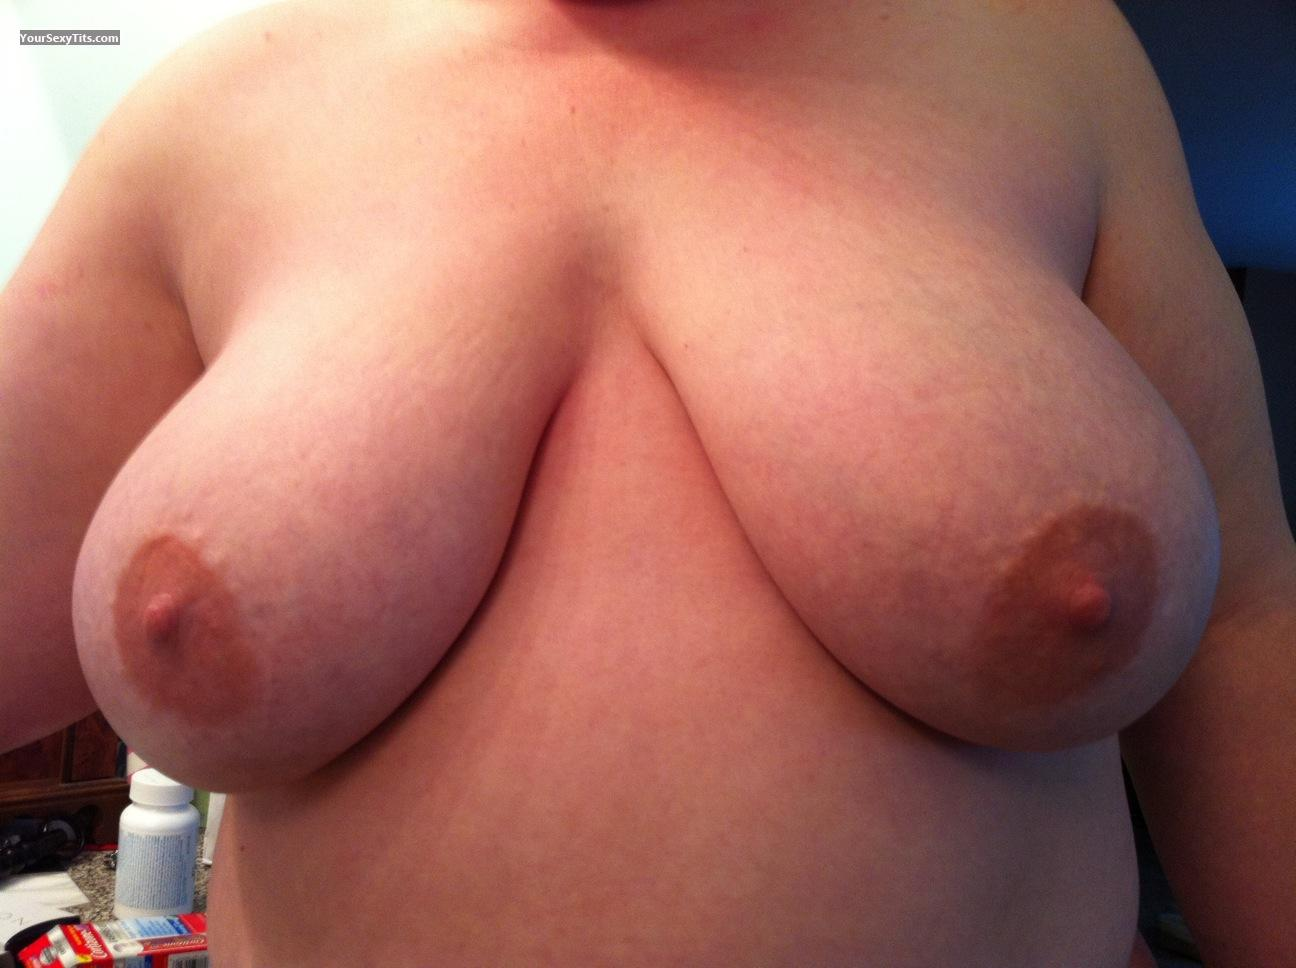 Tit Flash: Very Big Tits - Cindy from United States